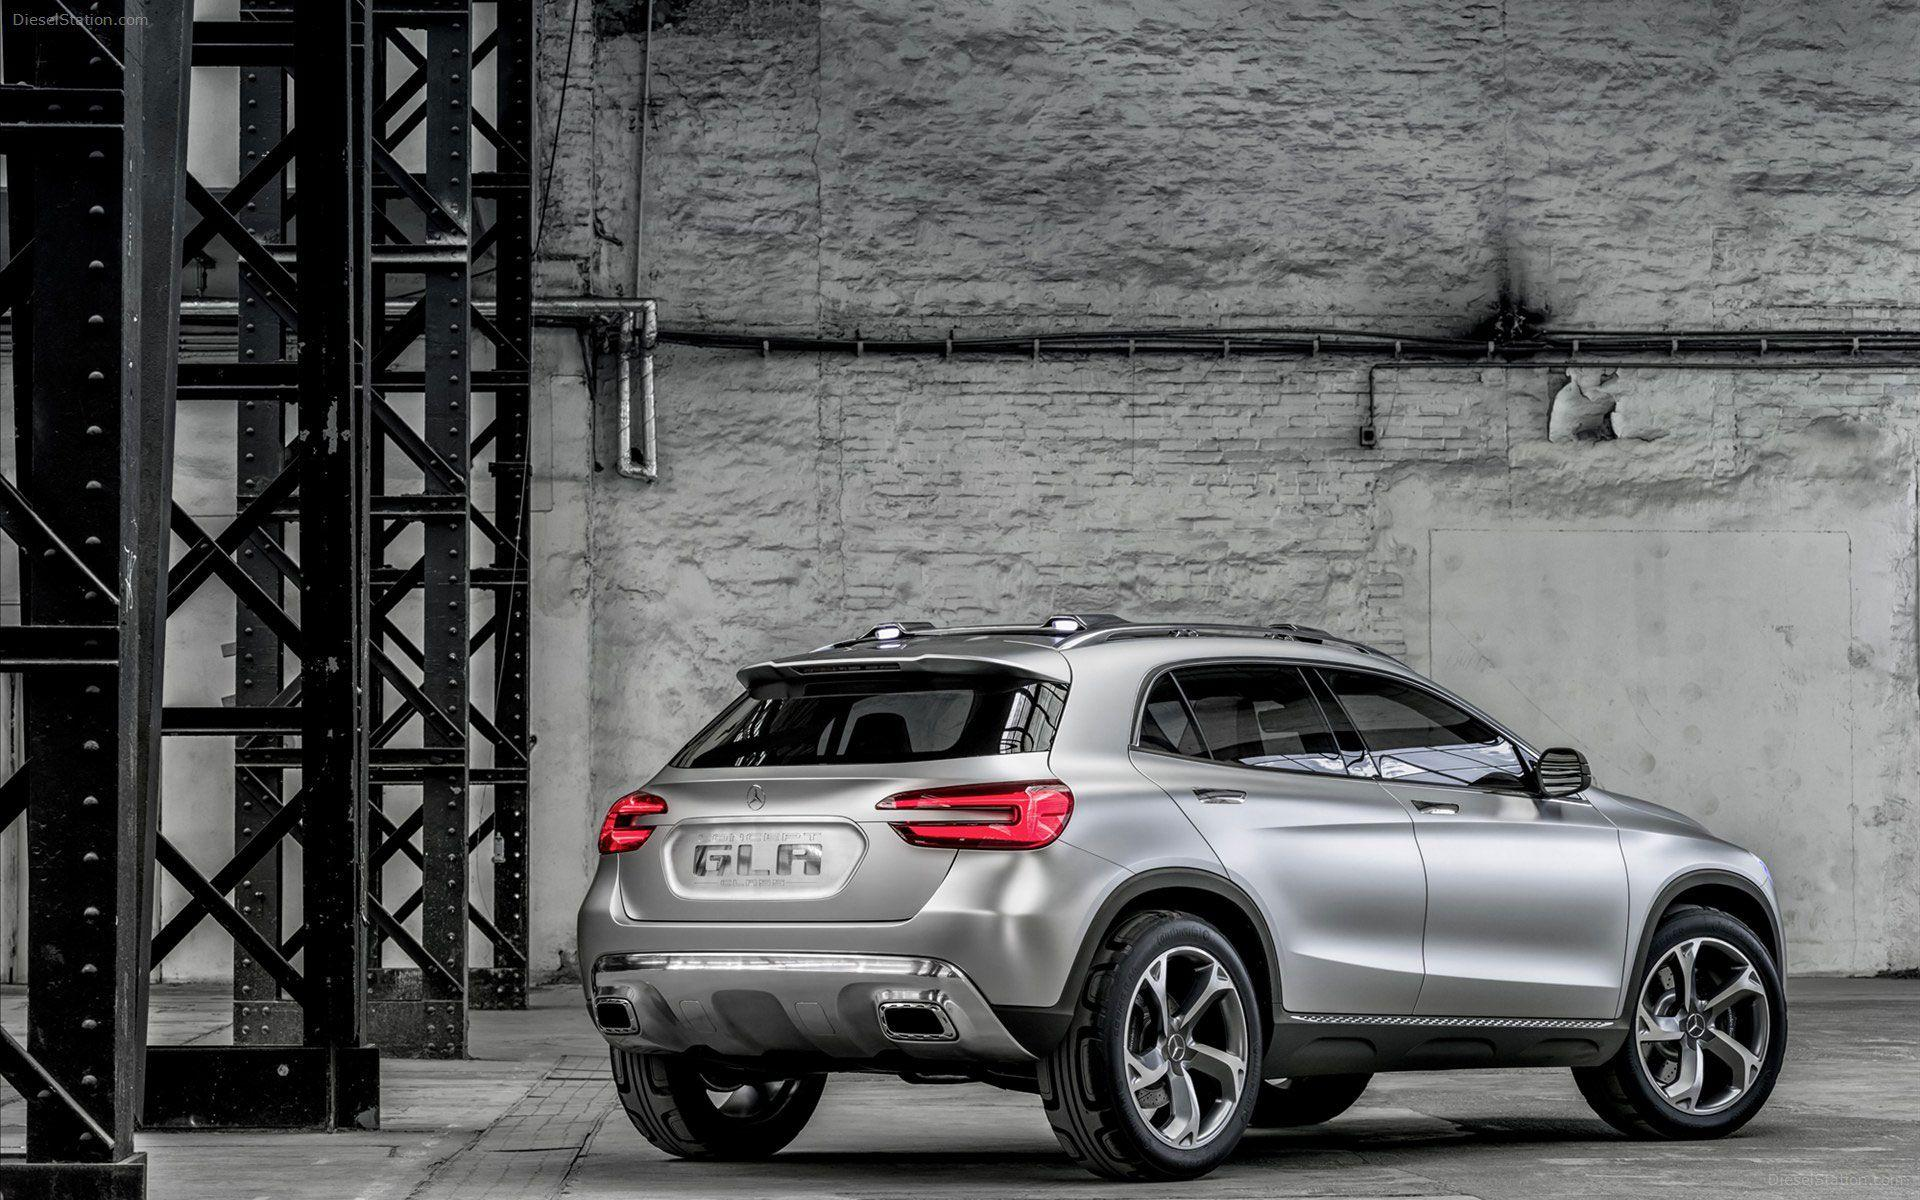 Silver Mercedes Benz GLA Concept HD Wallpapers in HD | Cars HD ...